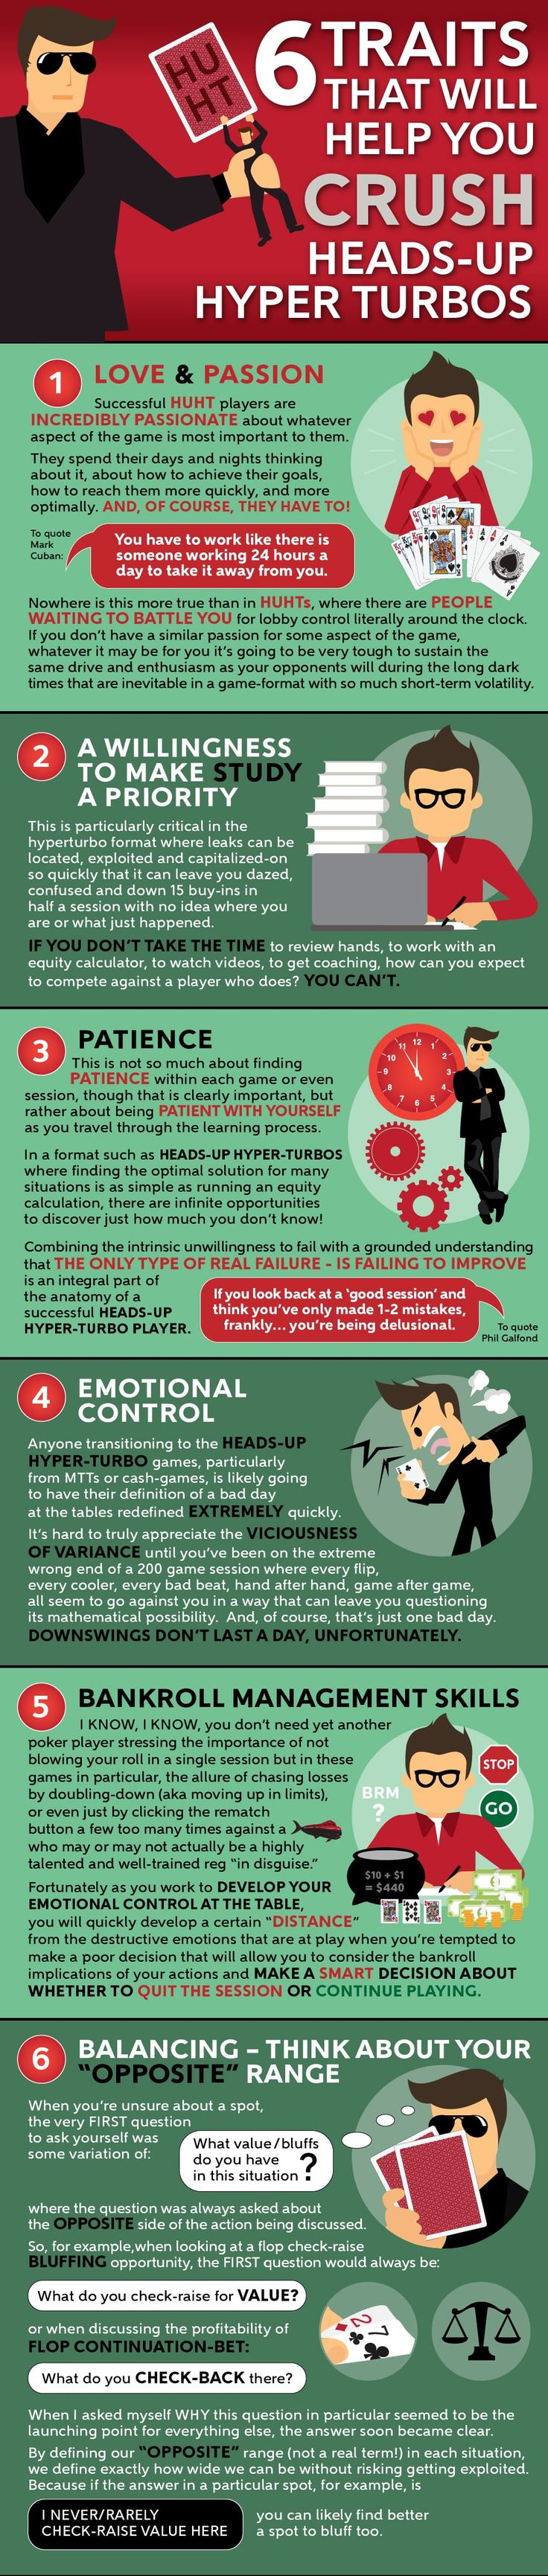 6 traits that most winning poker players, but particularly heads up hyper turbo players, have in common.